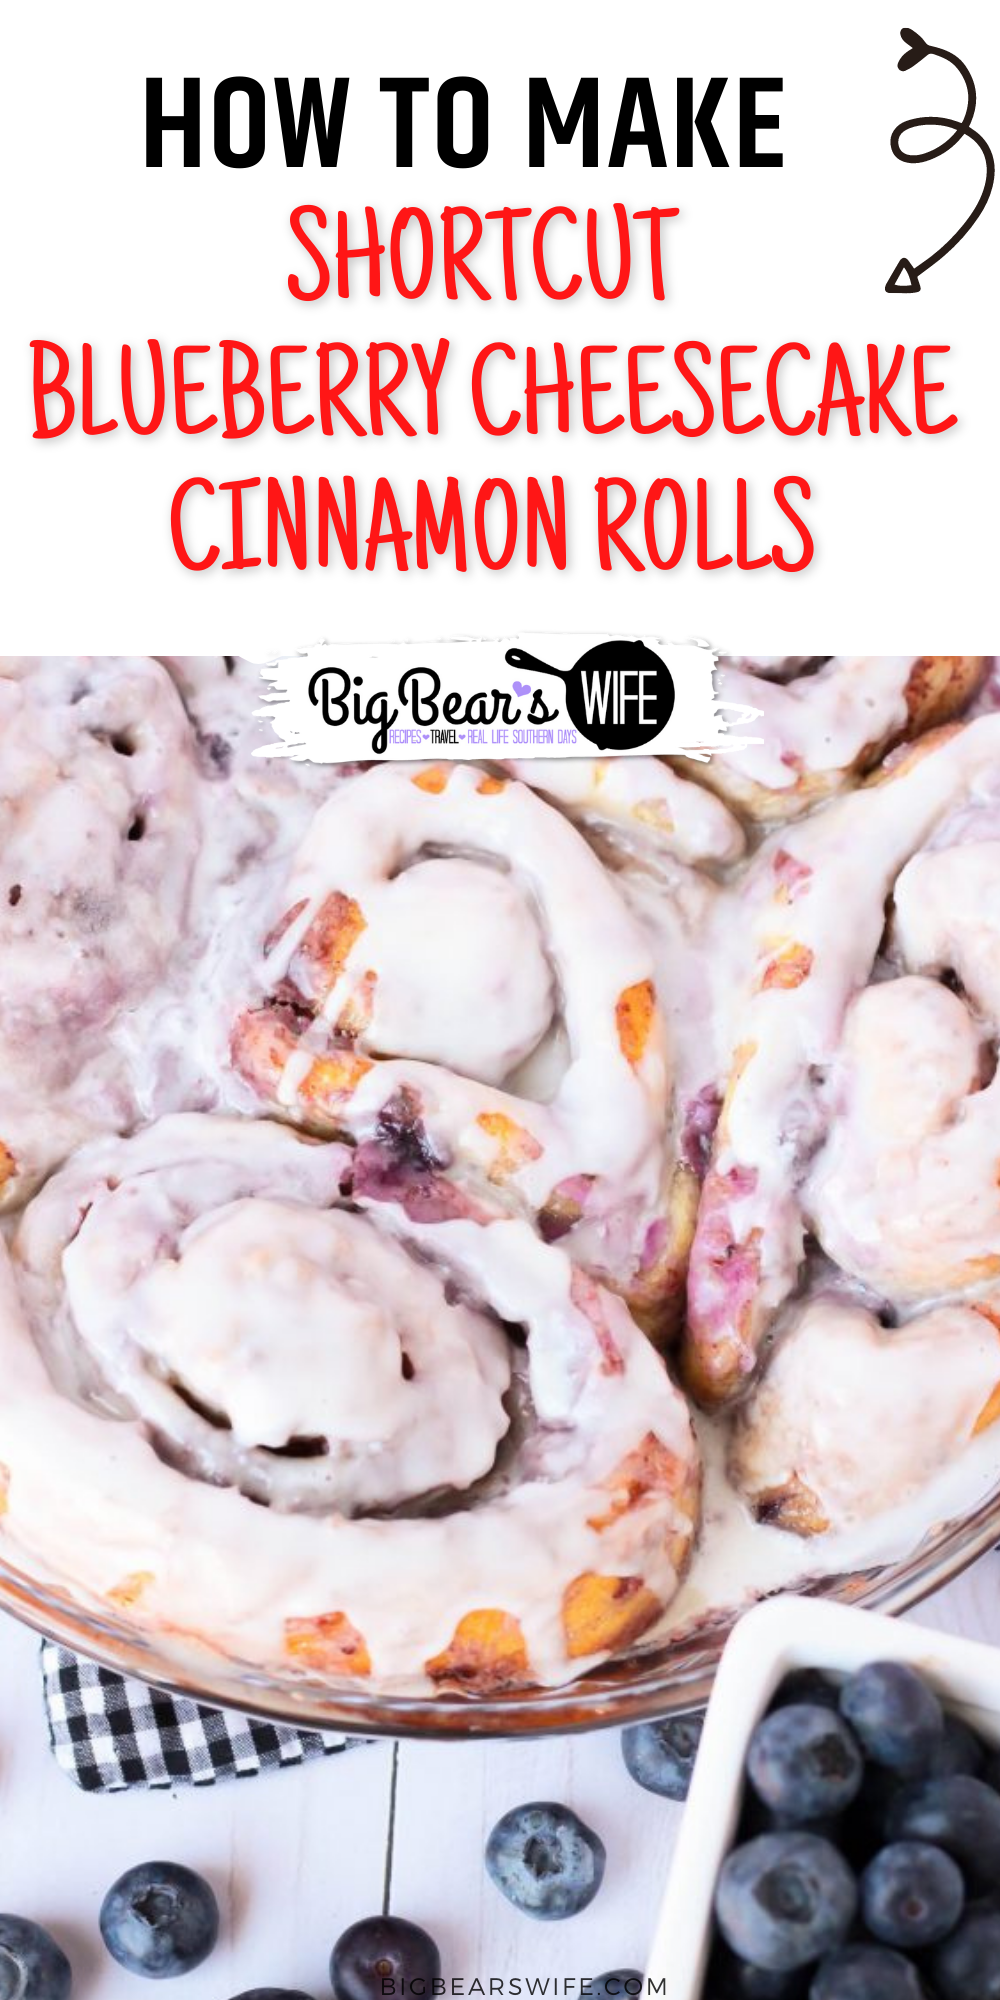 These Shortcut Blueberry Cheesecake Cinnamon Rolls use store bought cinnamon rolls and a homemade blueberry cheesecake filling to create a delicious breakfast or brunch that's perfect for the weekend! Make the blueberry compote the night before for an even faster morning treat!